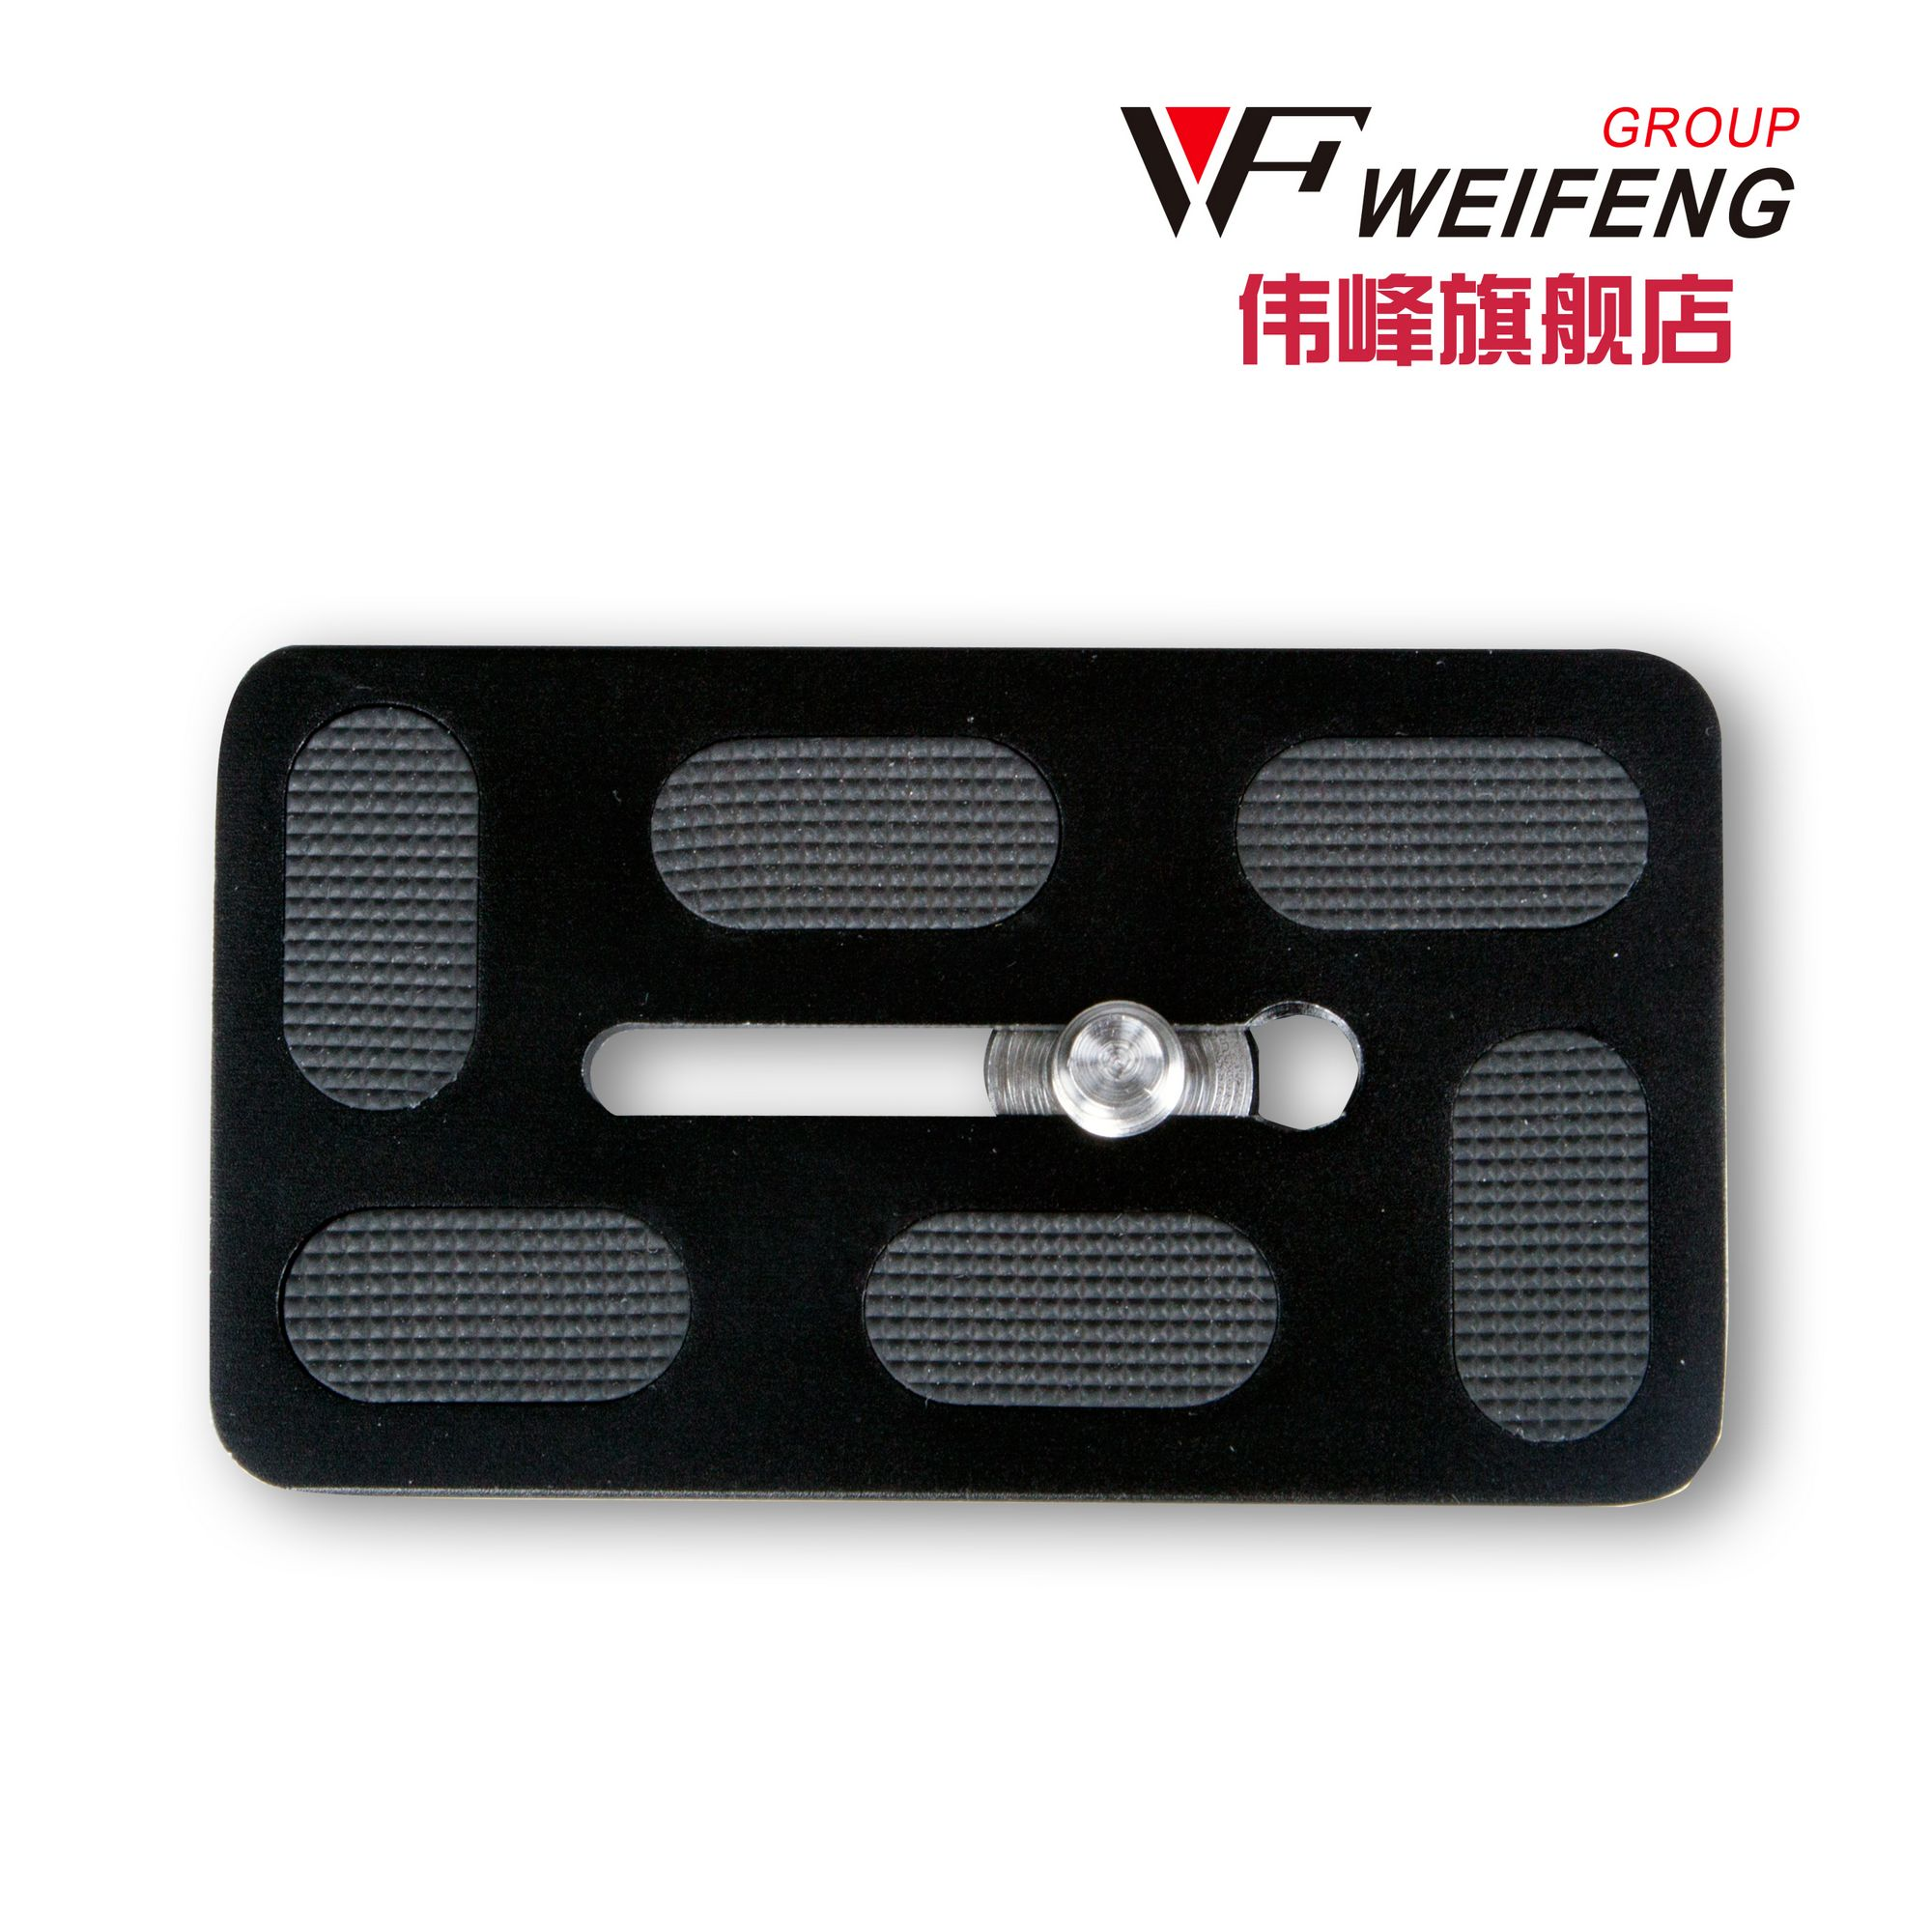 Weifeng hj-39h panel quick release plate c284a 284b 285 c285 general panel